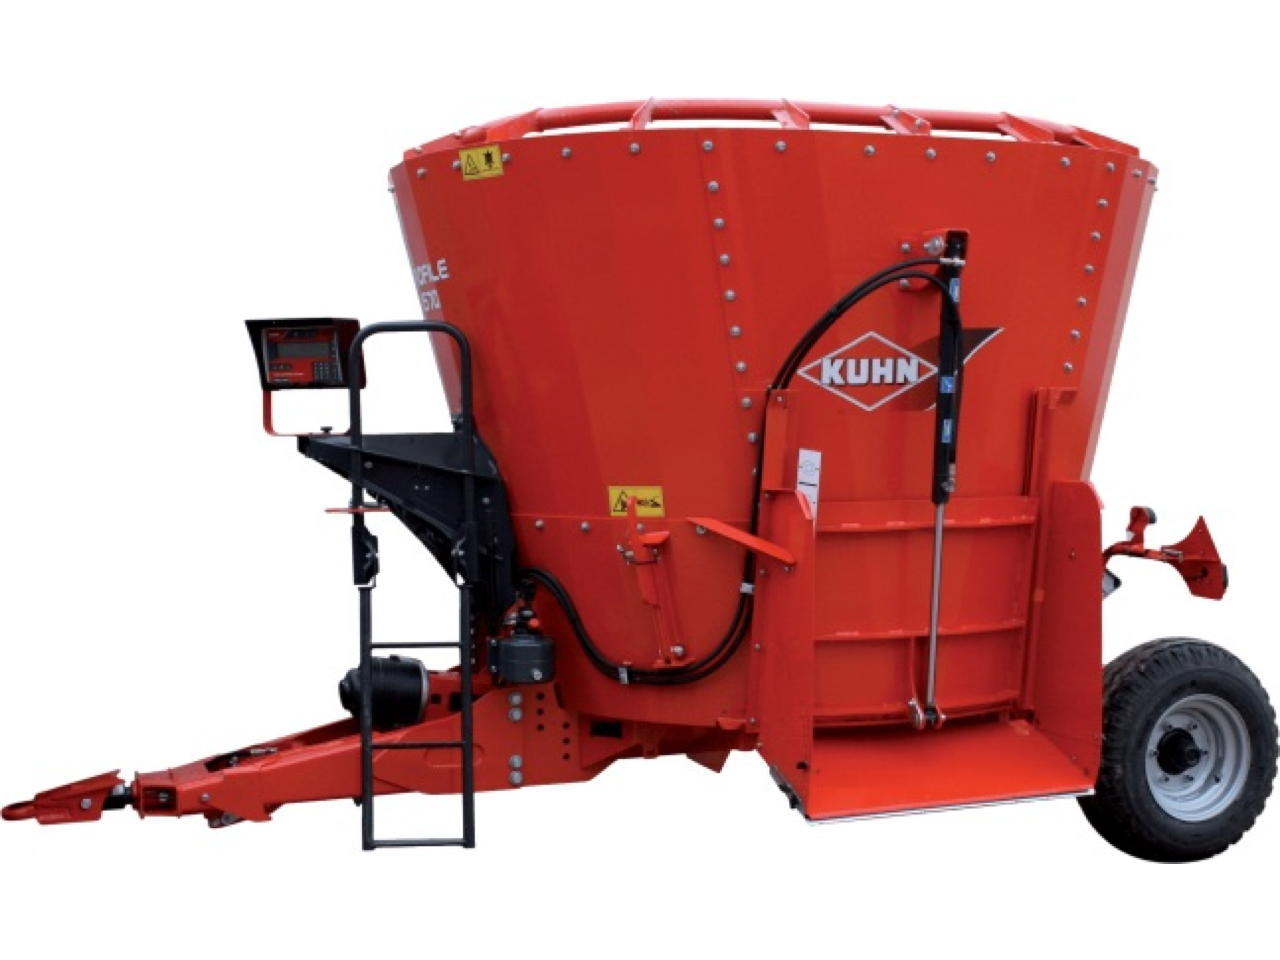 Kuhn Profile 1 DS Profile 6.1 DS